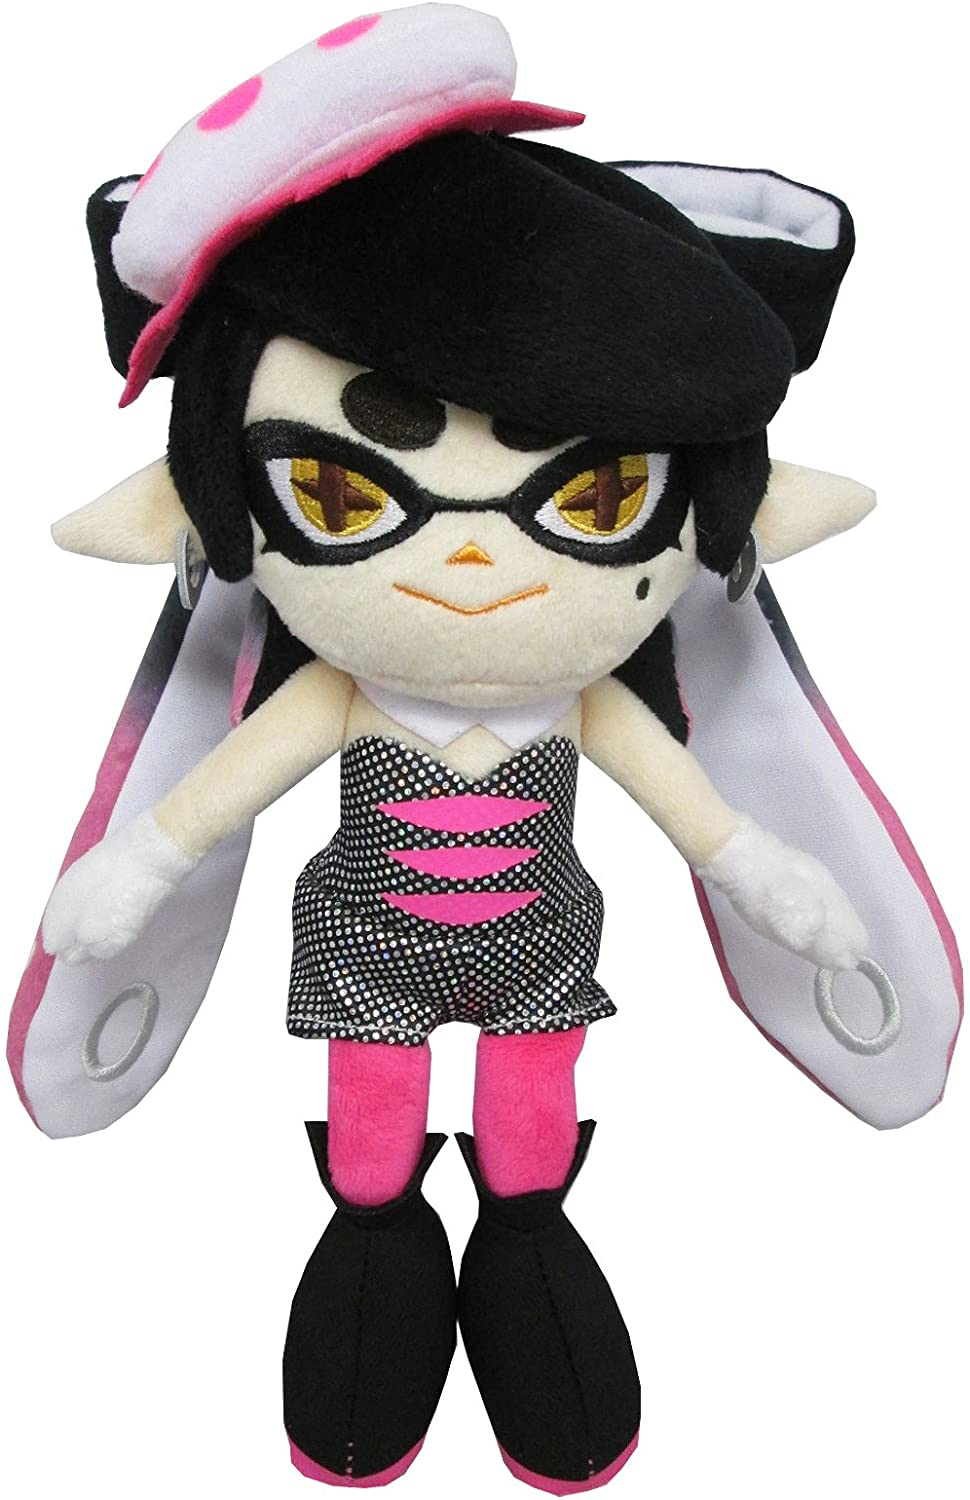 "Official Sanei Splatoon Marie Green Squid Sister Plush Toy Doll 9/"" Octopus Gift"